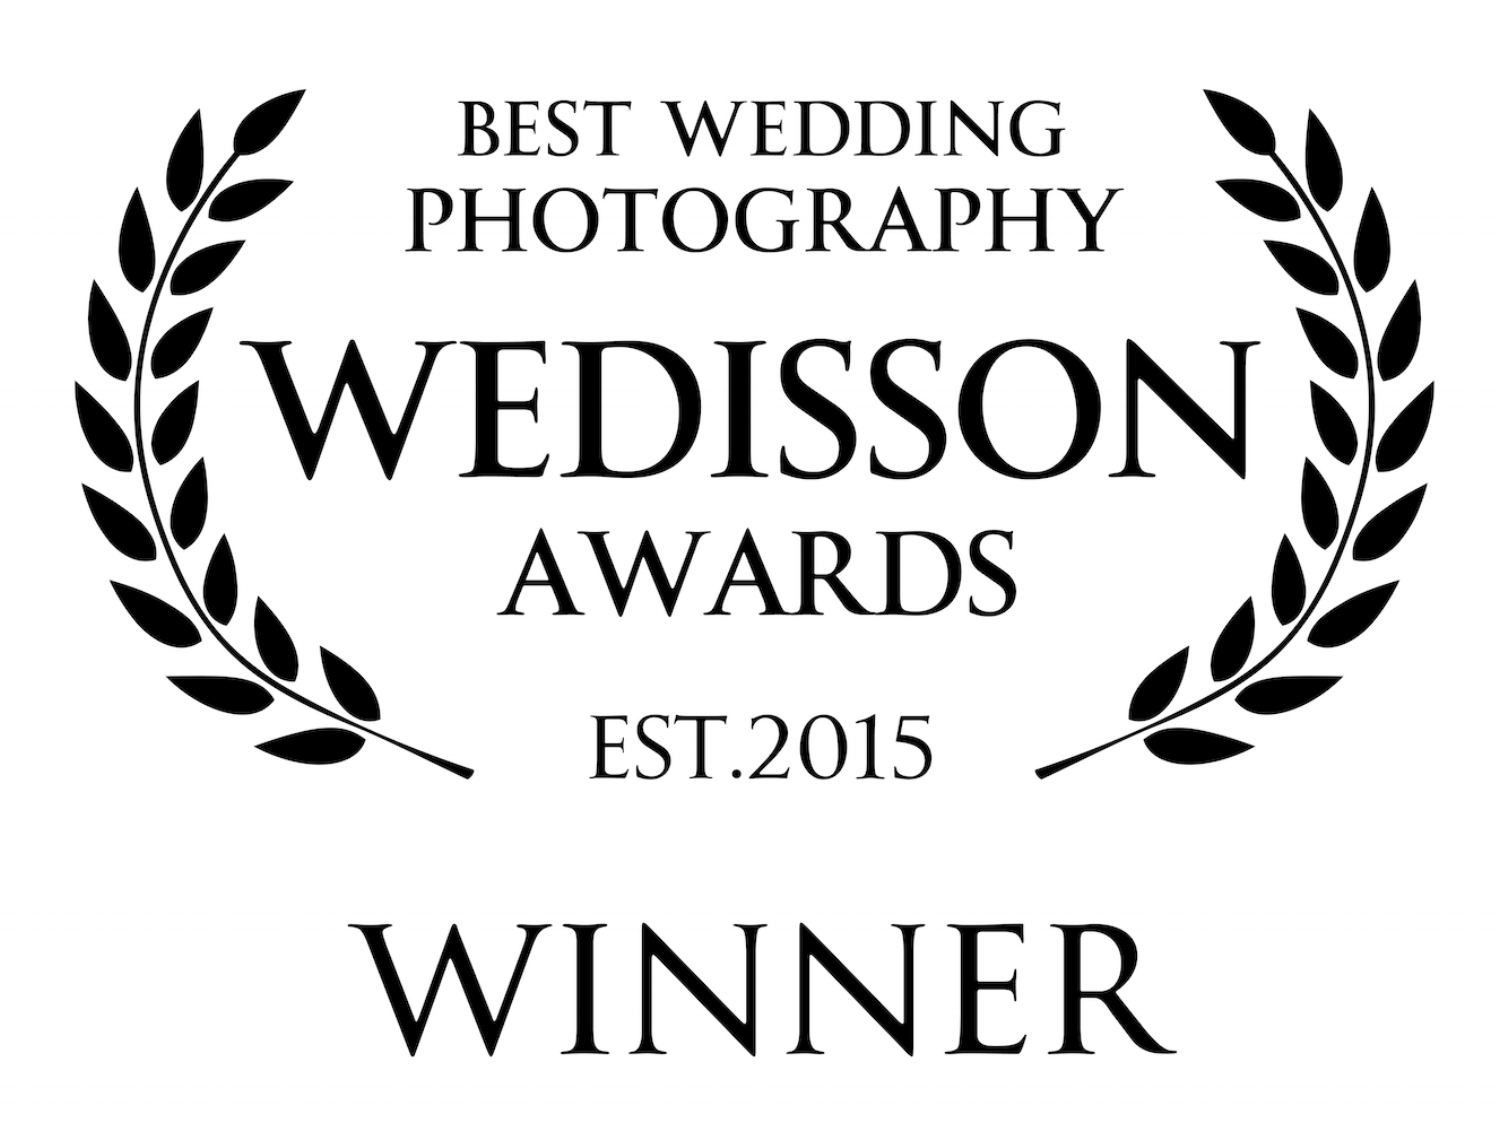 Copy of Wedisson Awards Winner